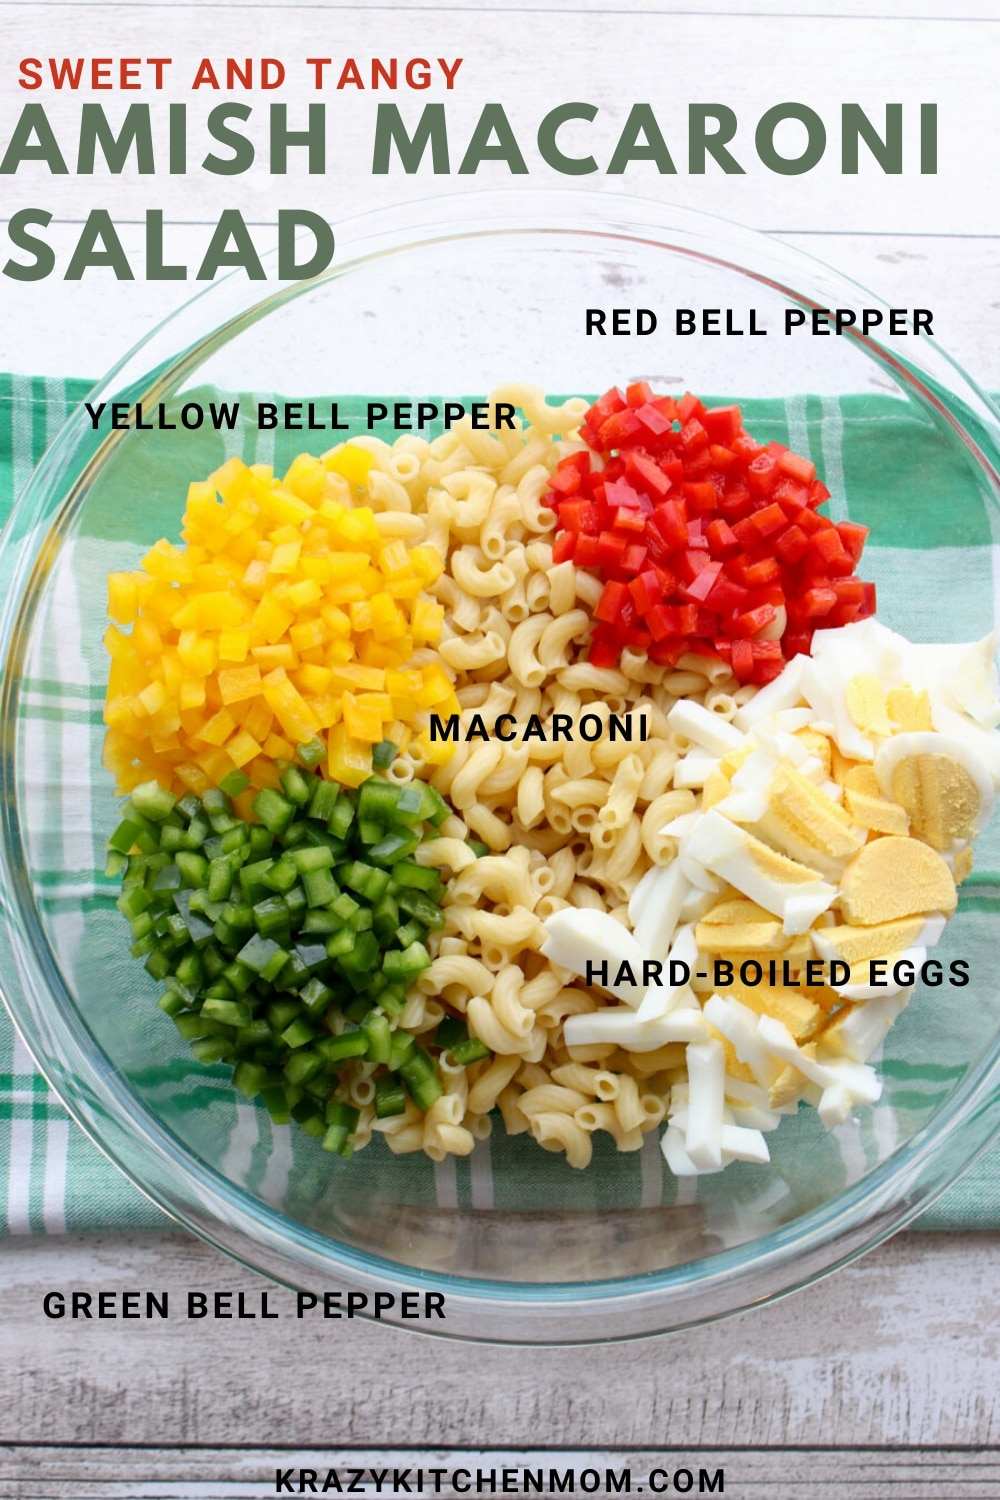 BOWL of Macaroni salad ingredients